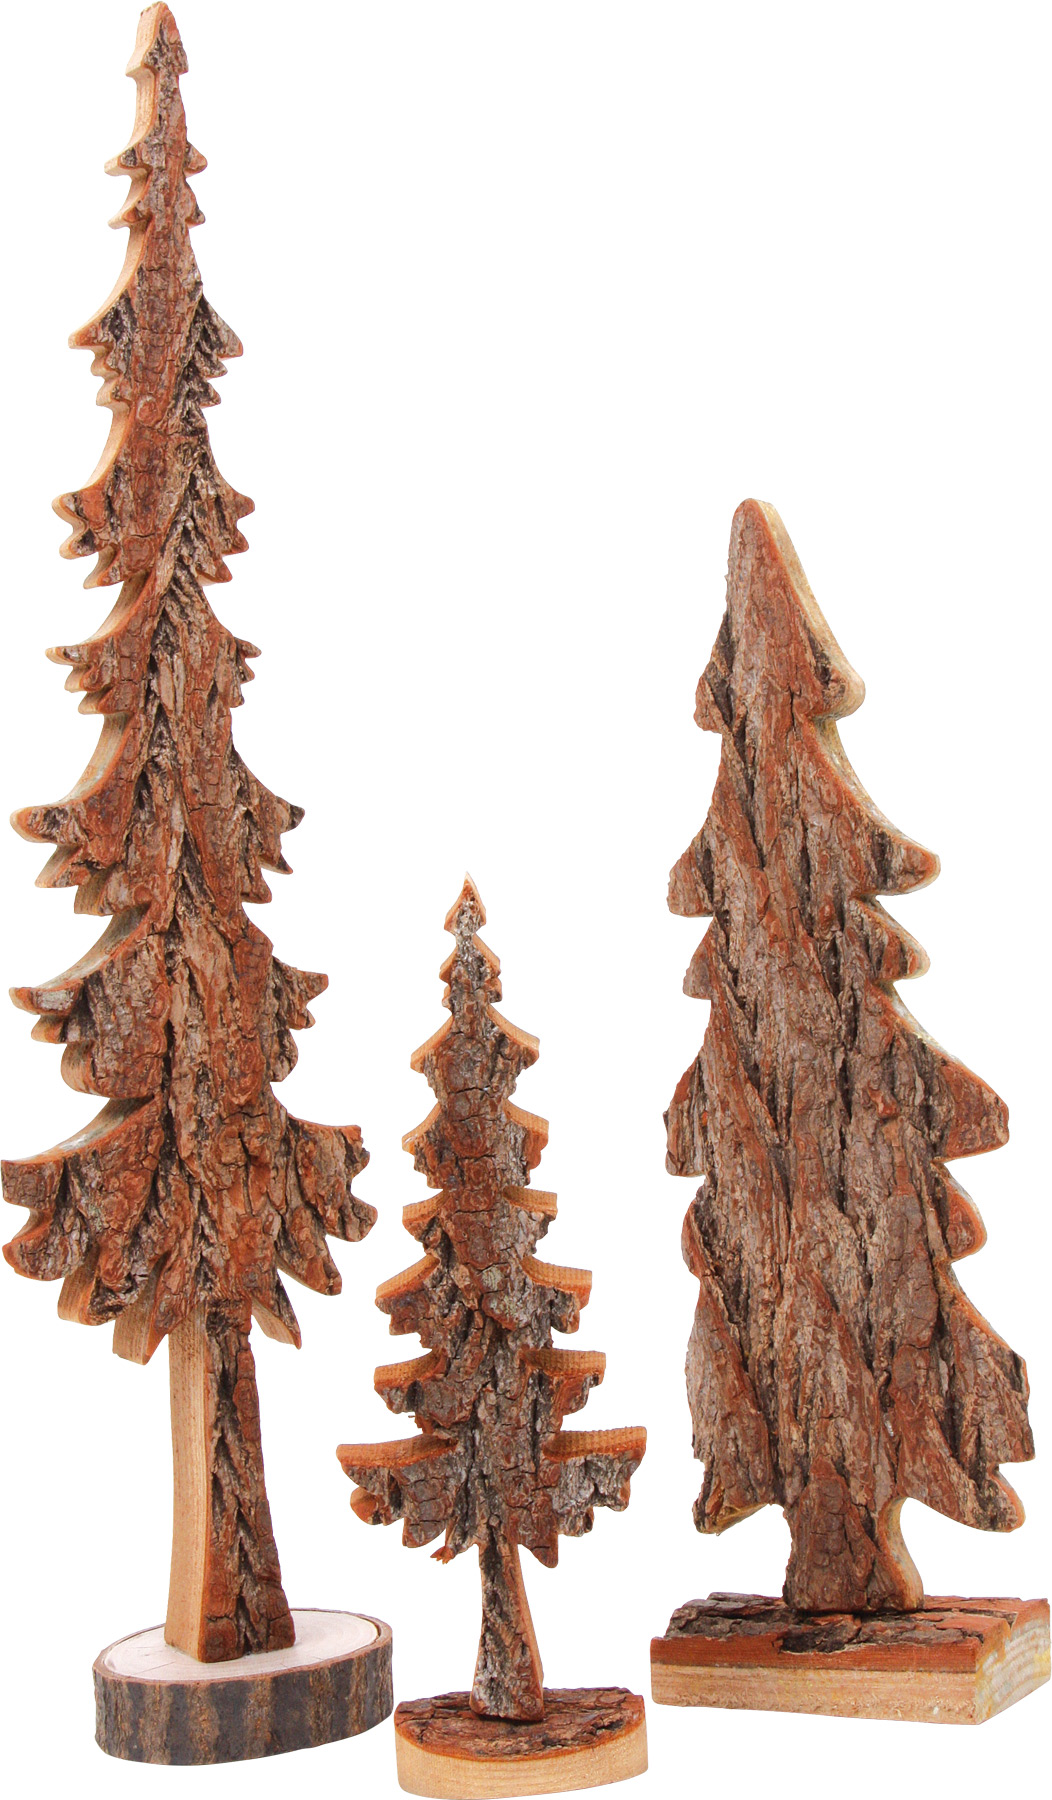 Sapins de décoration - Lot de 3